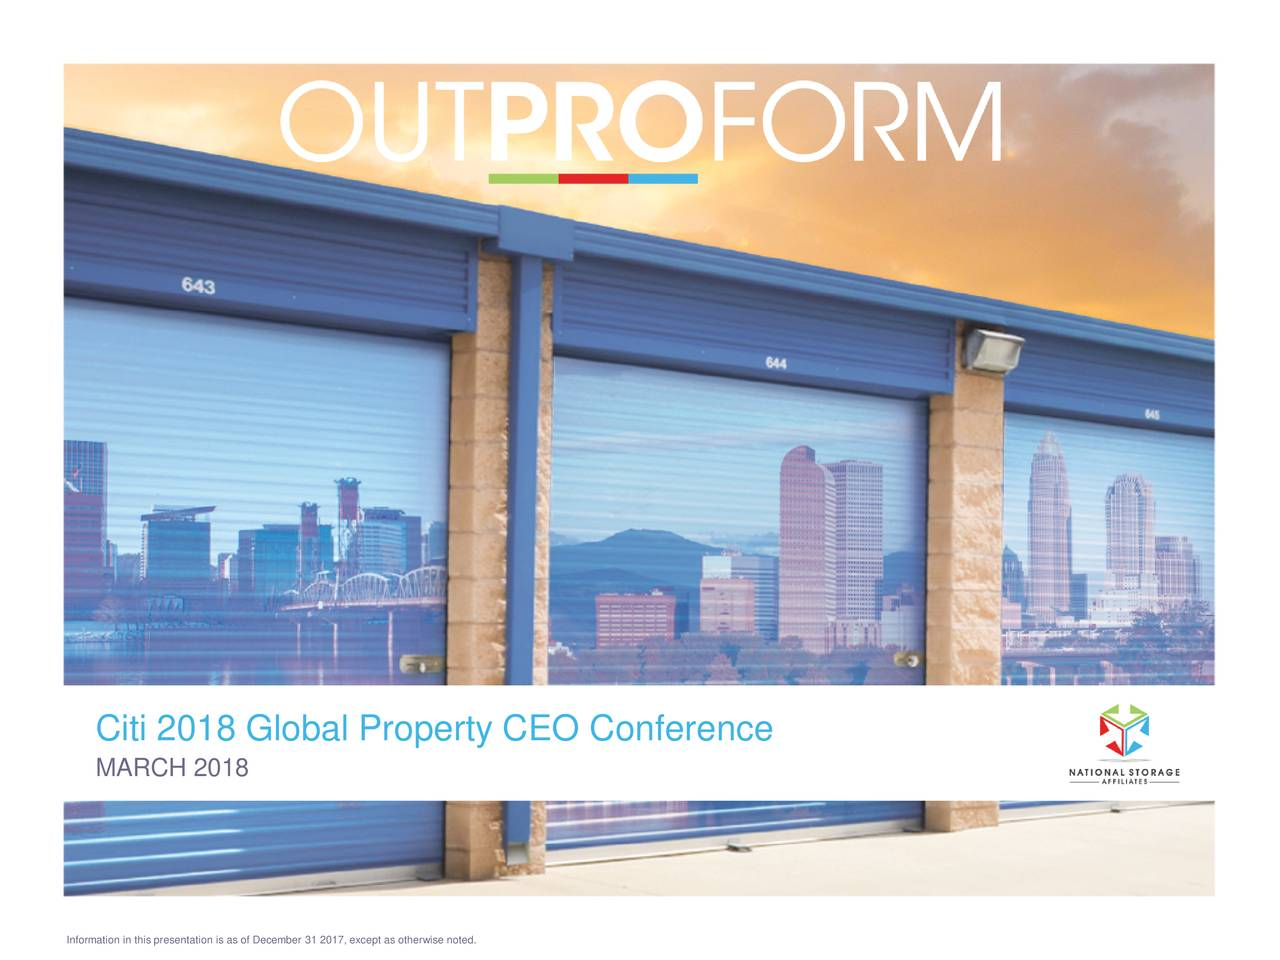 Citi Global Property Ceo Conference